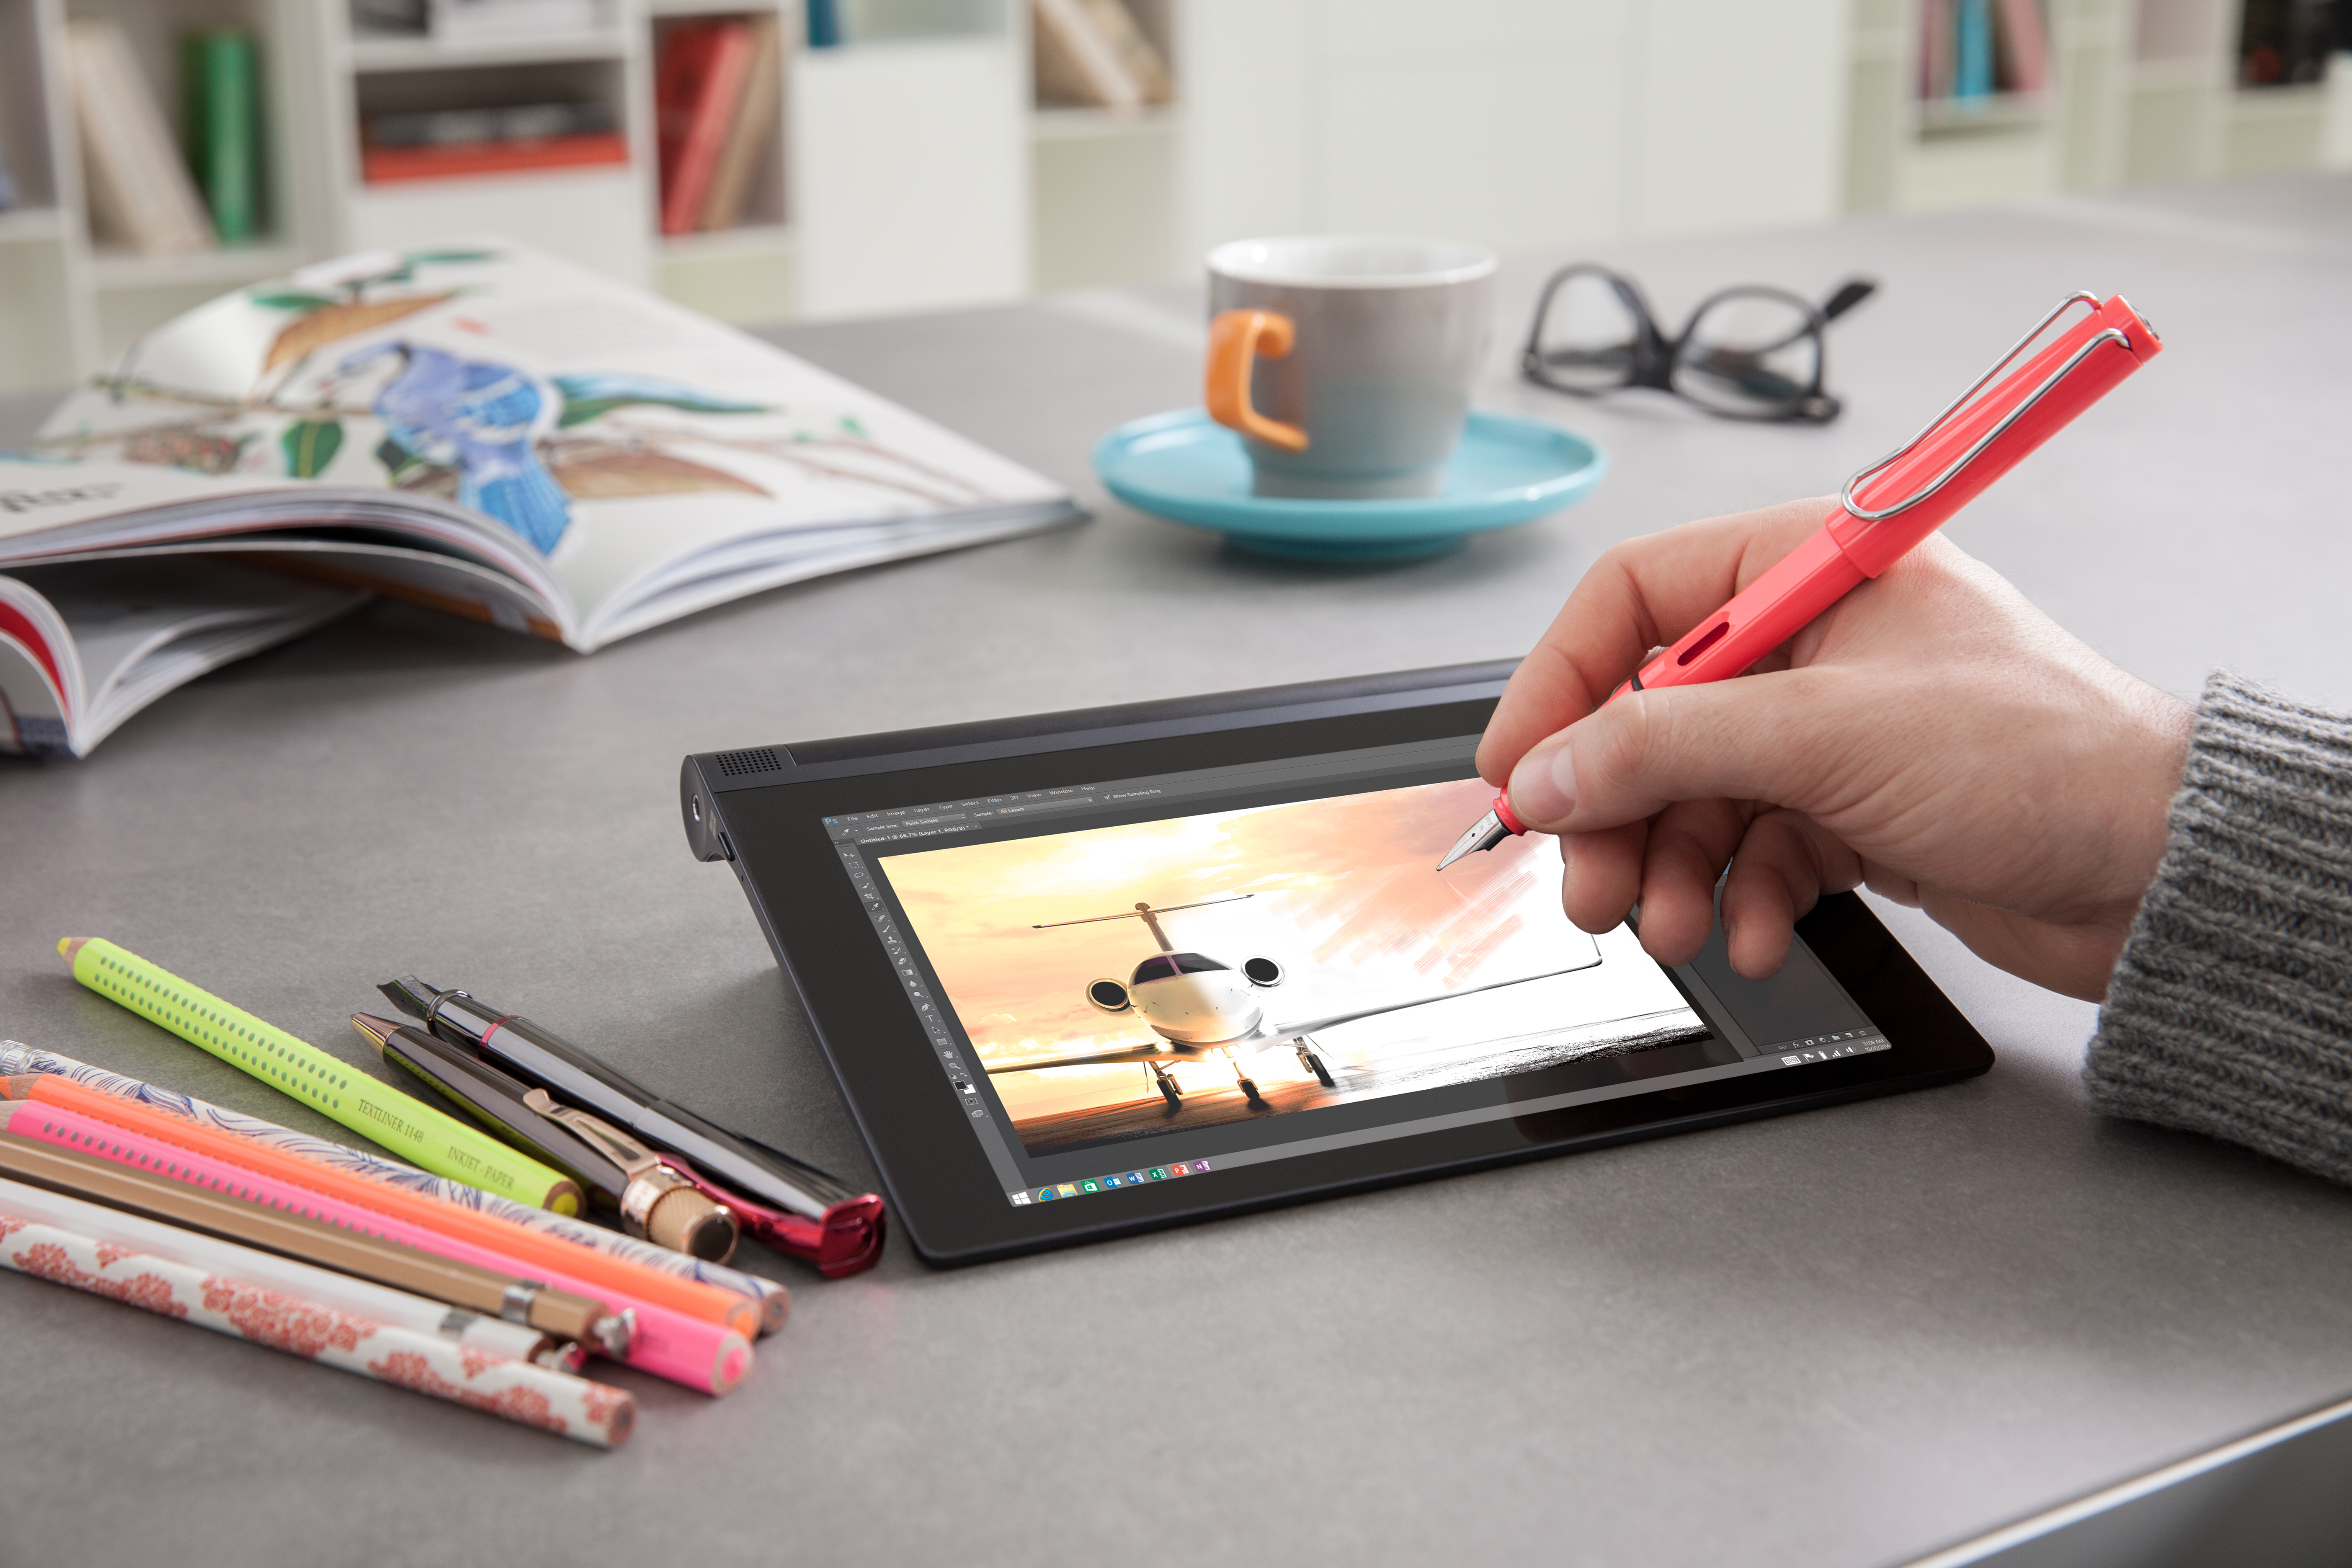 Lenovo-Tablet-2-8-inch